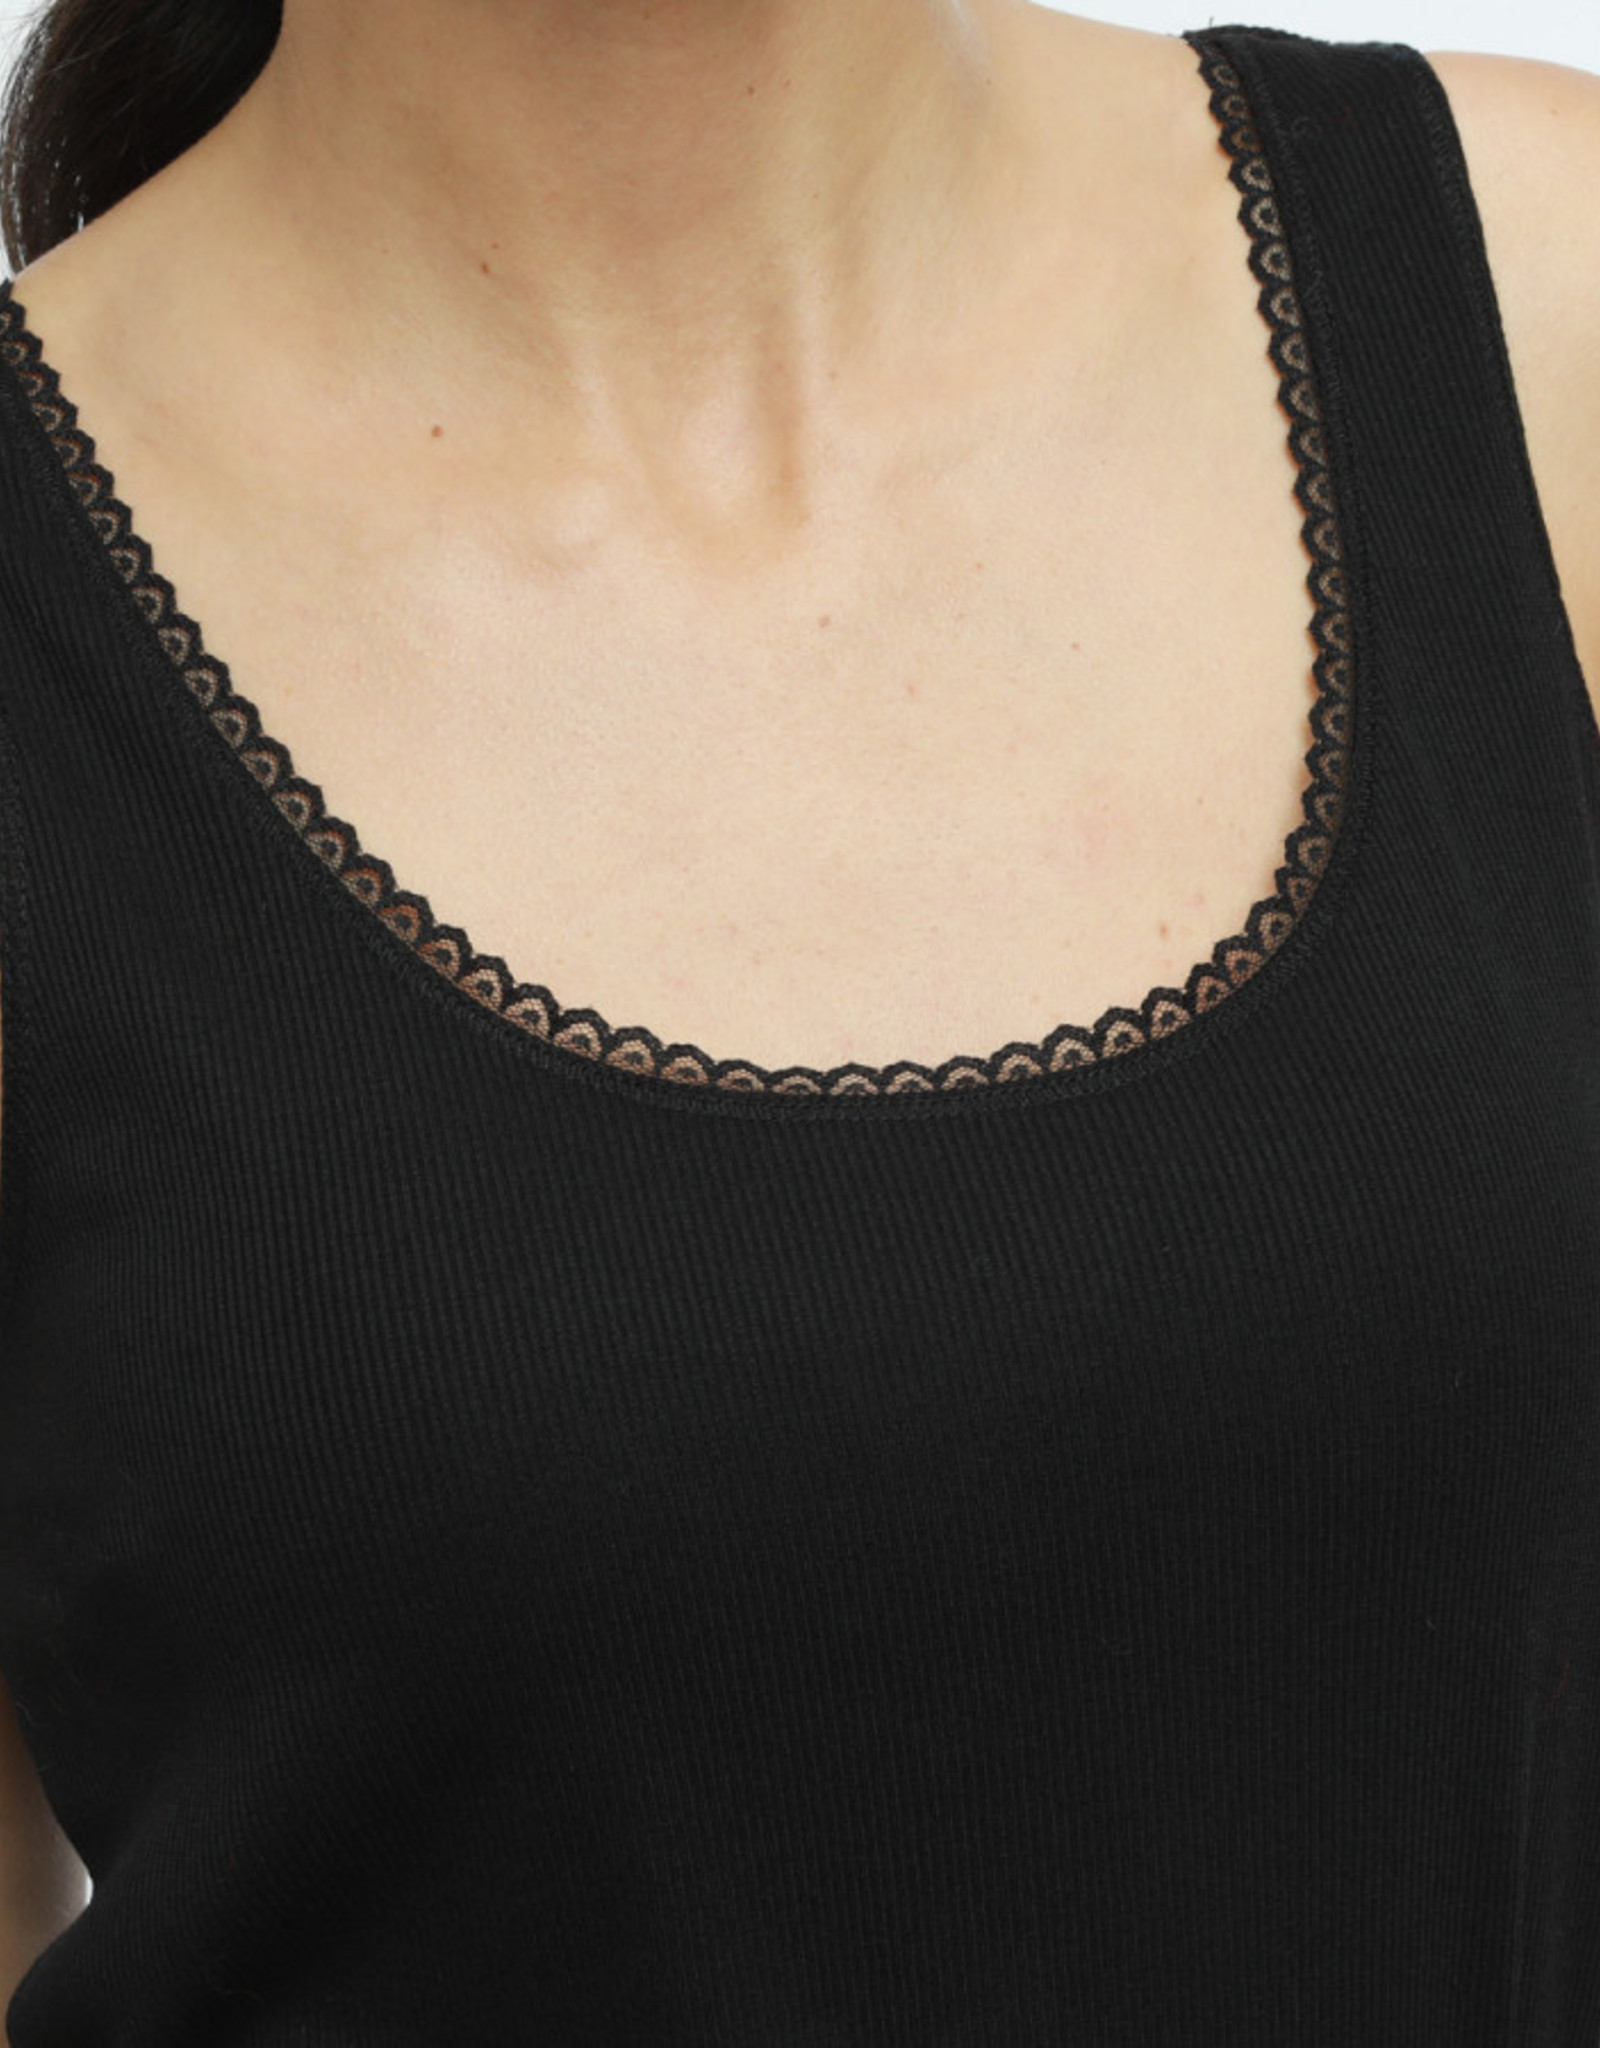 The Golden House Top 'Candice' - Black